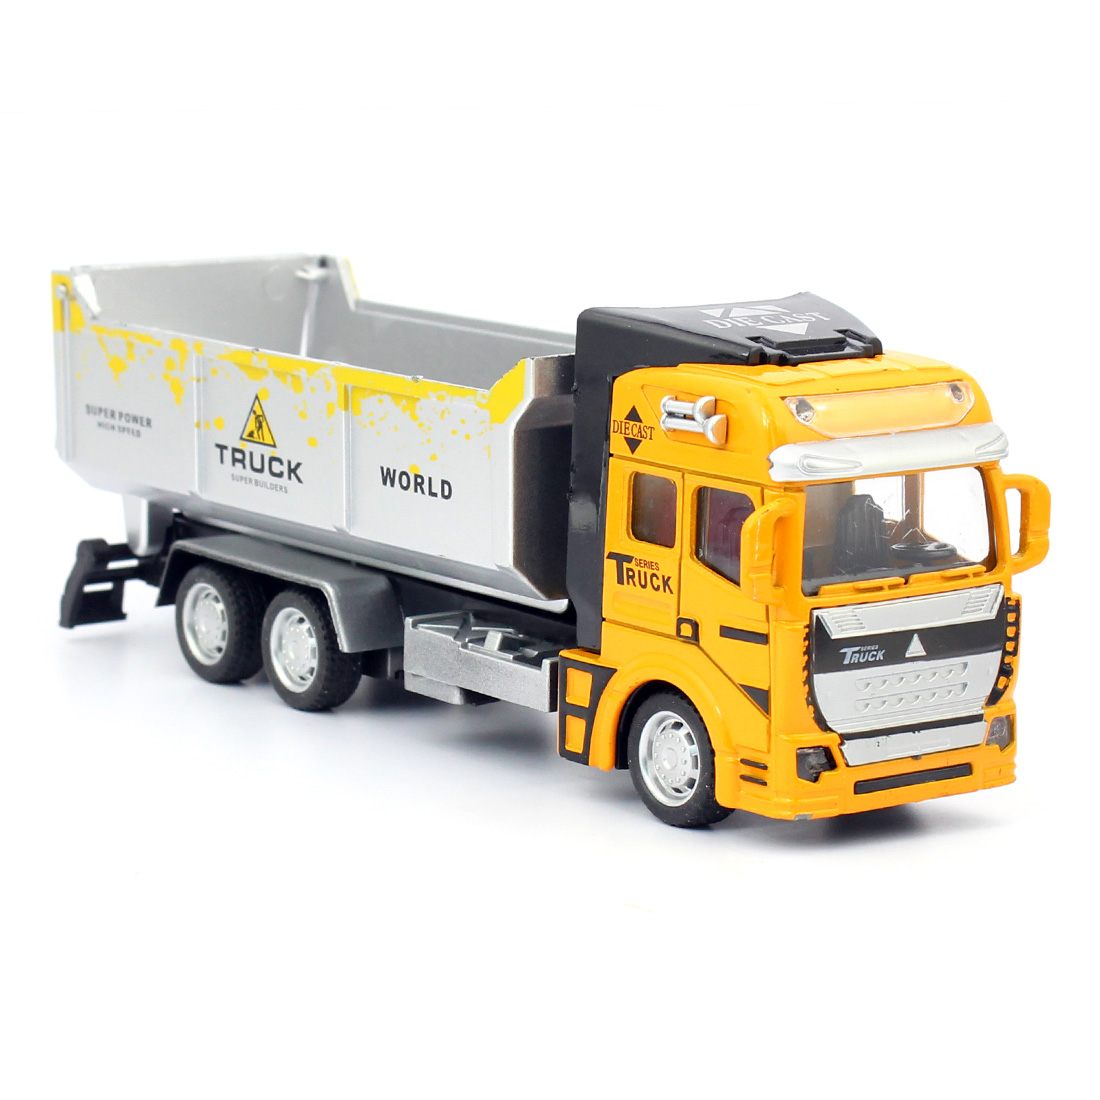 22*10*6.5cm 1:48 Alloy Pull Back Engineer Truck Educational Engineering Dump Truck Toys Car For Childrens Kids Gift